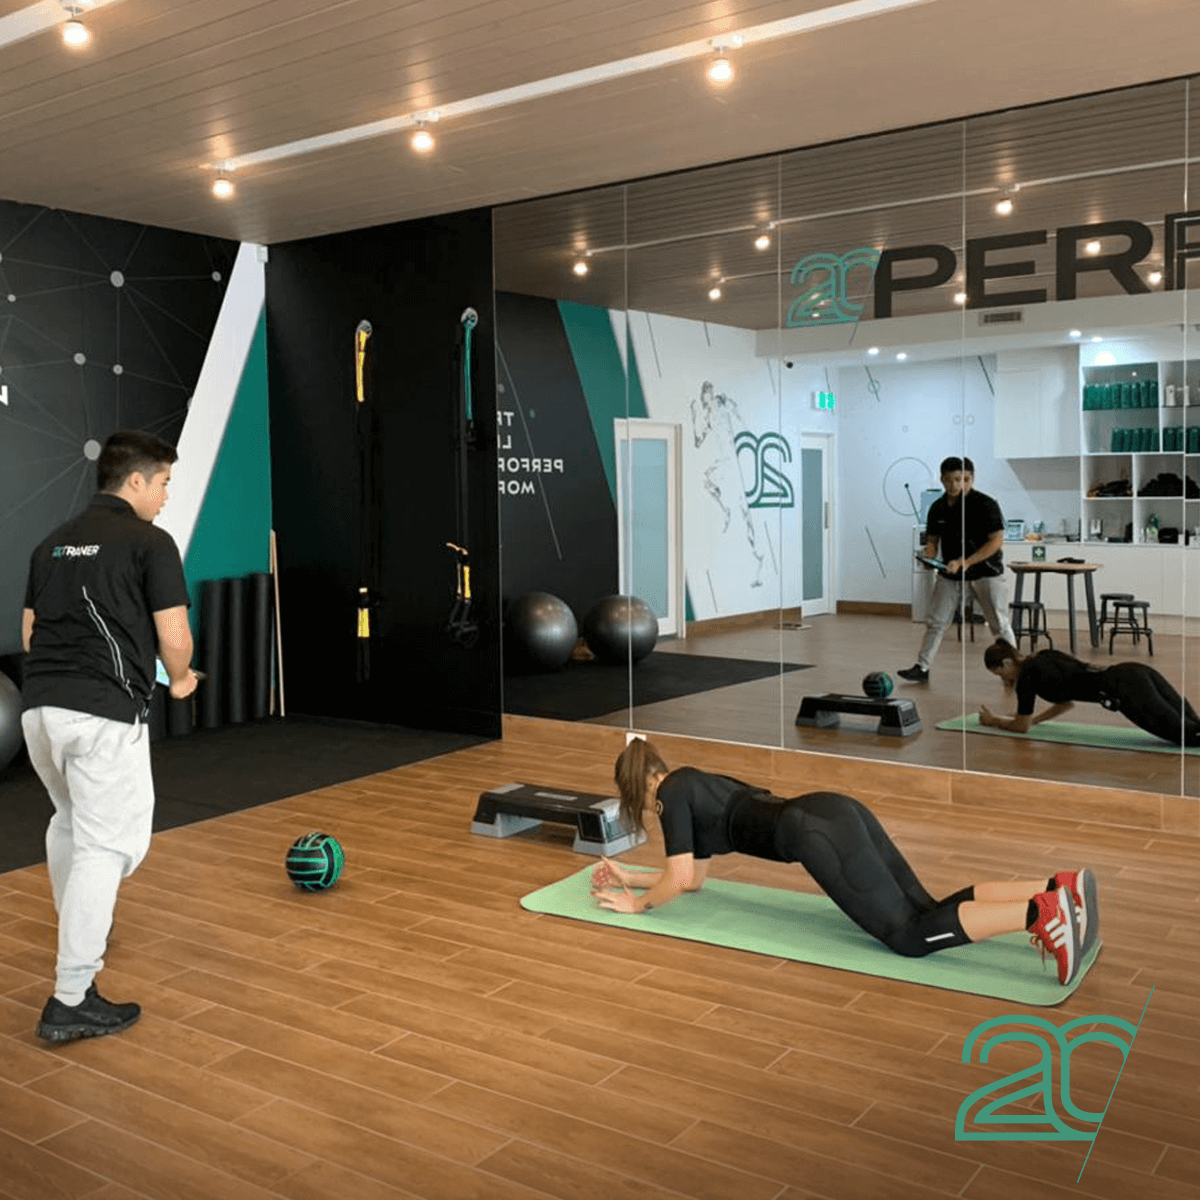 Woman Doing Core Exercises at 20PerFit's Gym Using EMS Technology